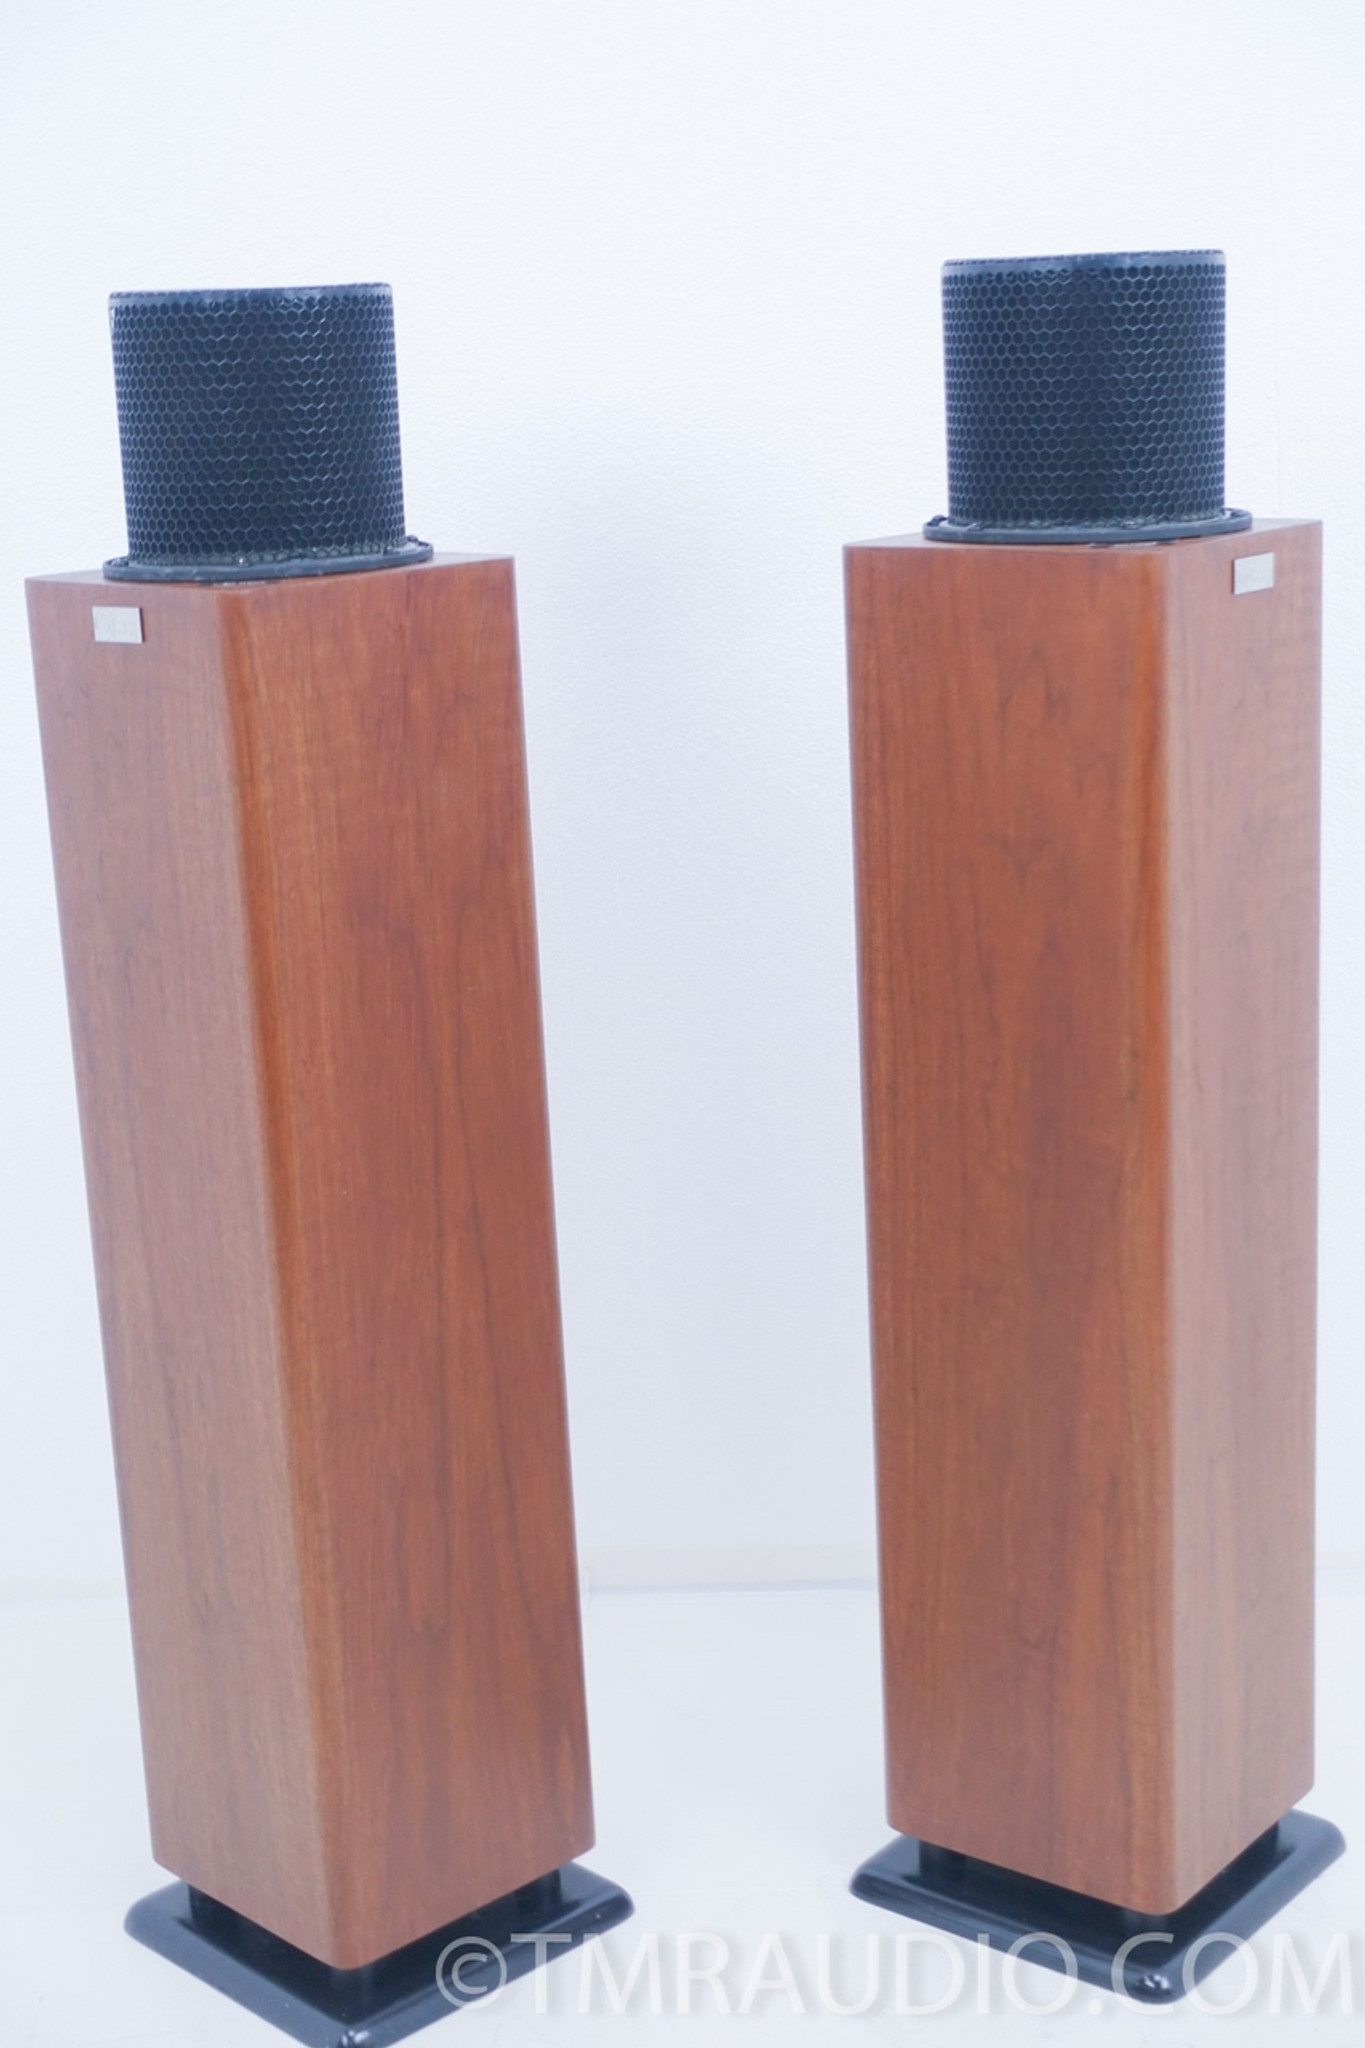 Ohm Acoustics Walsh 1000 Tall Speakers Pair The Music Room